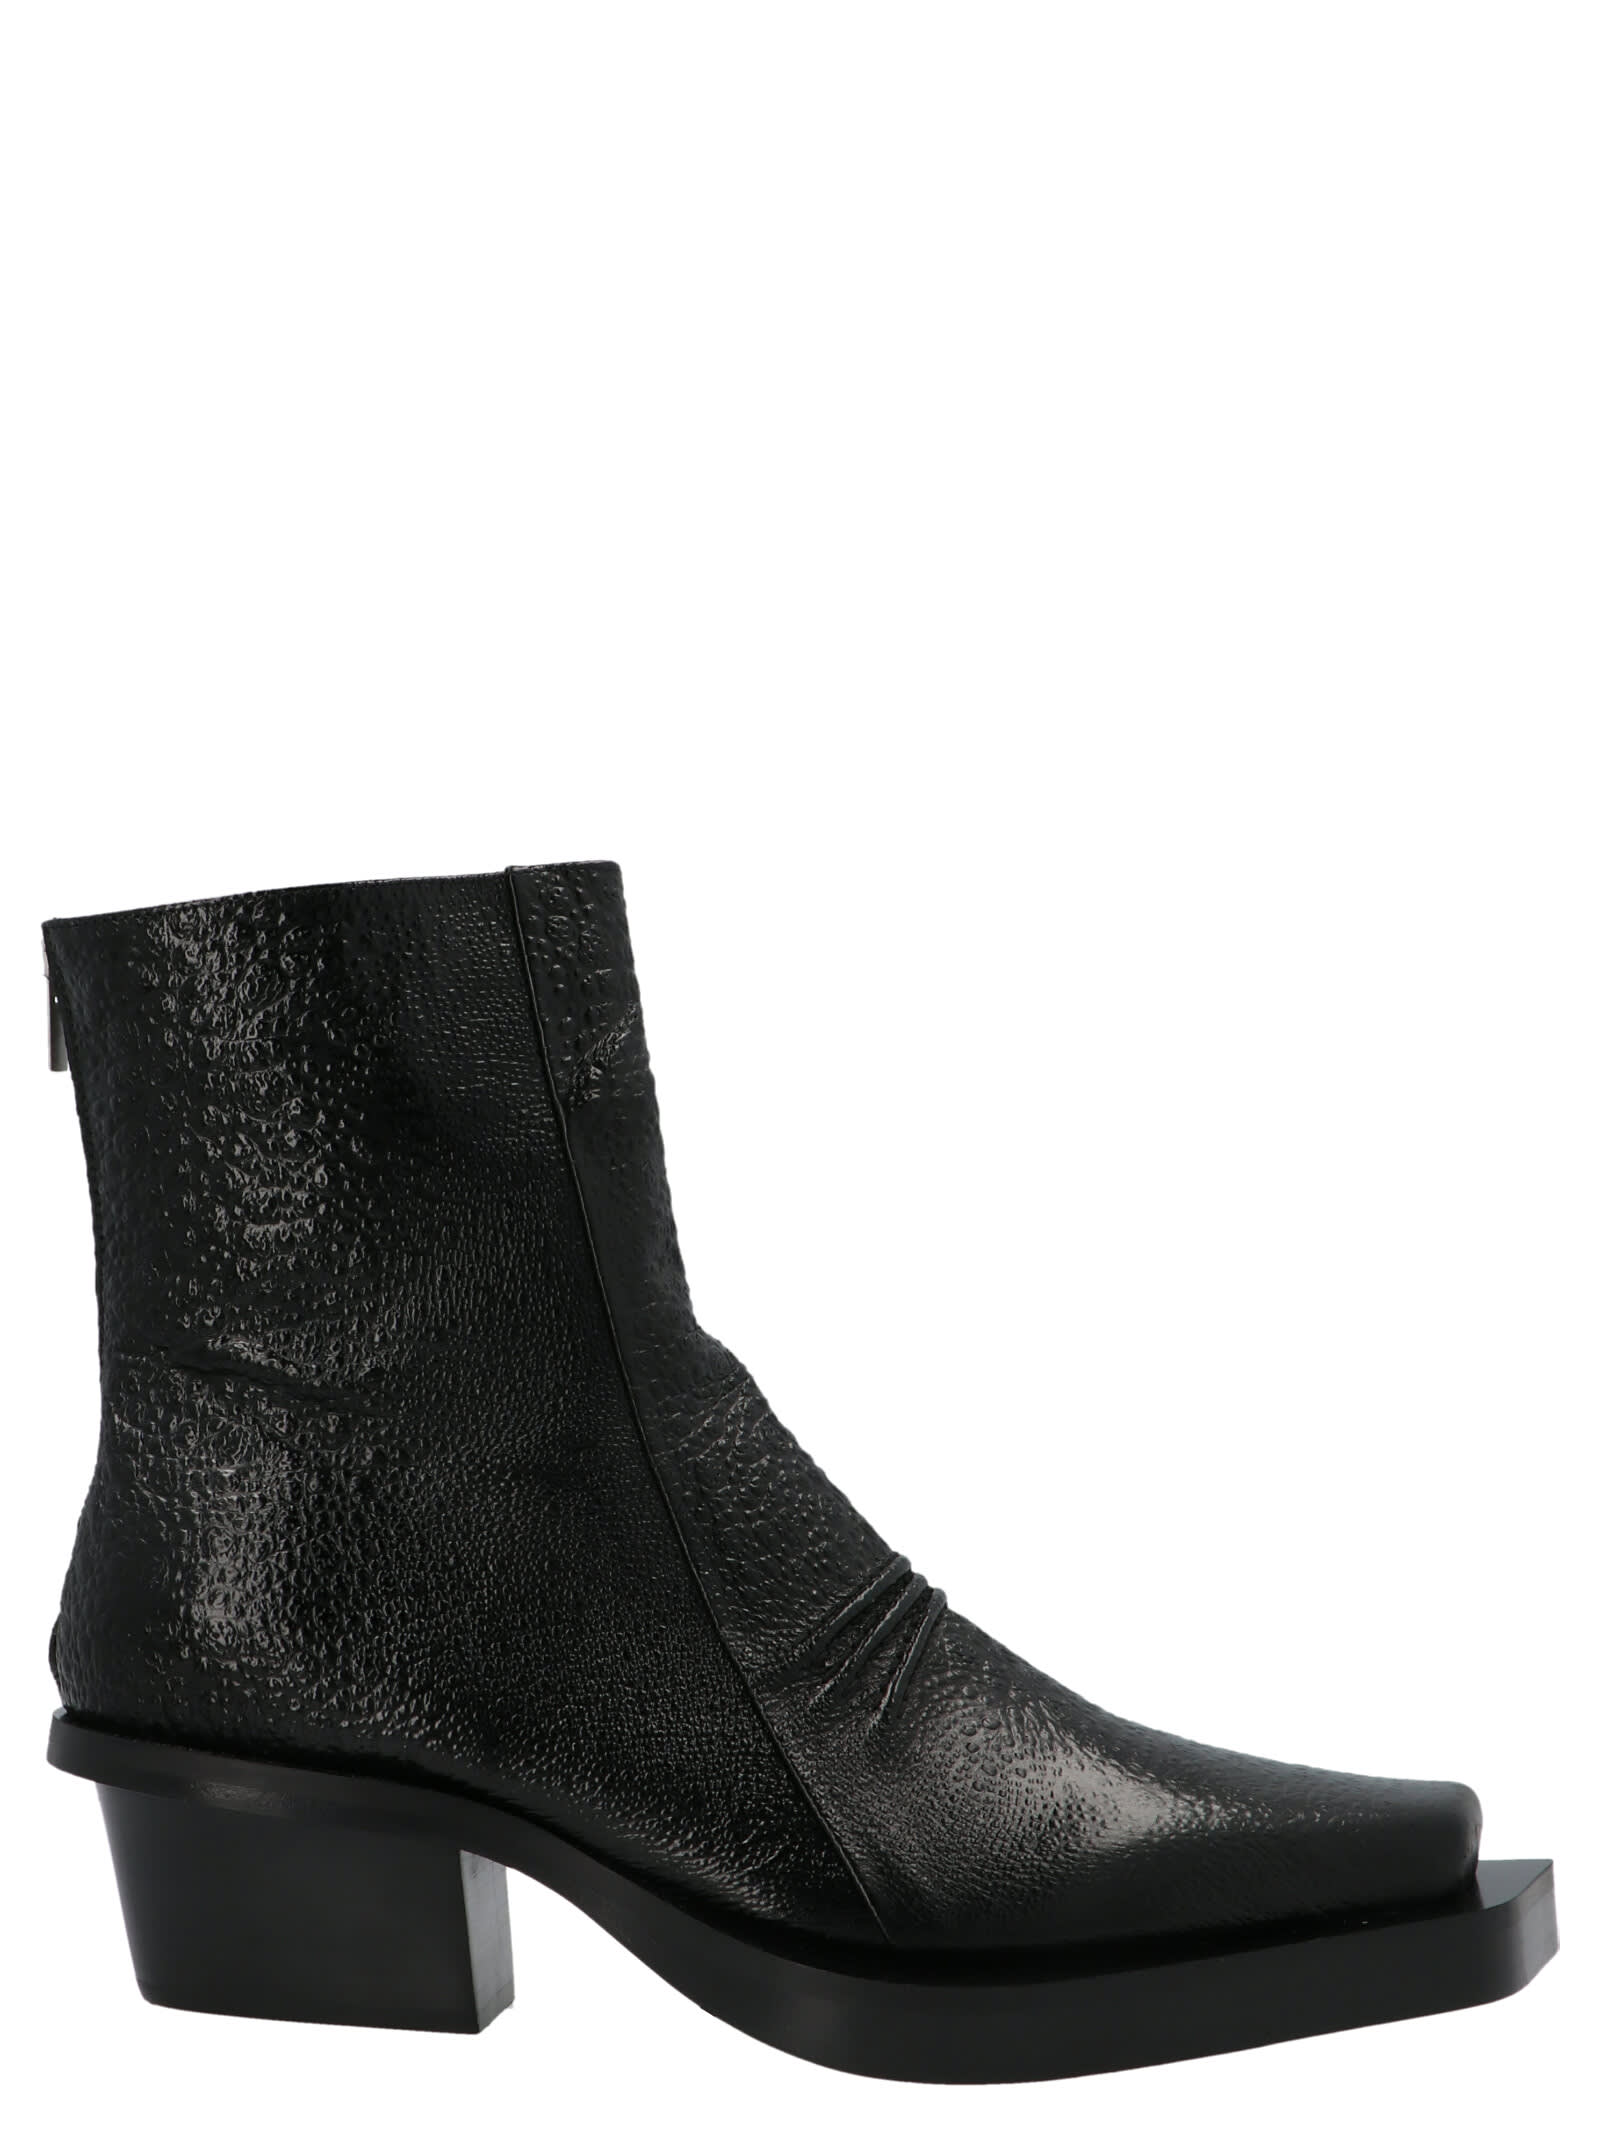 Alyx Leathers 1017 ALYX 9SM TEX SHOES